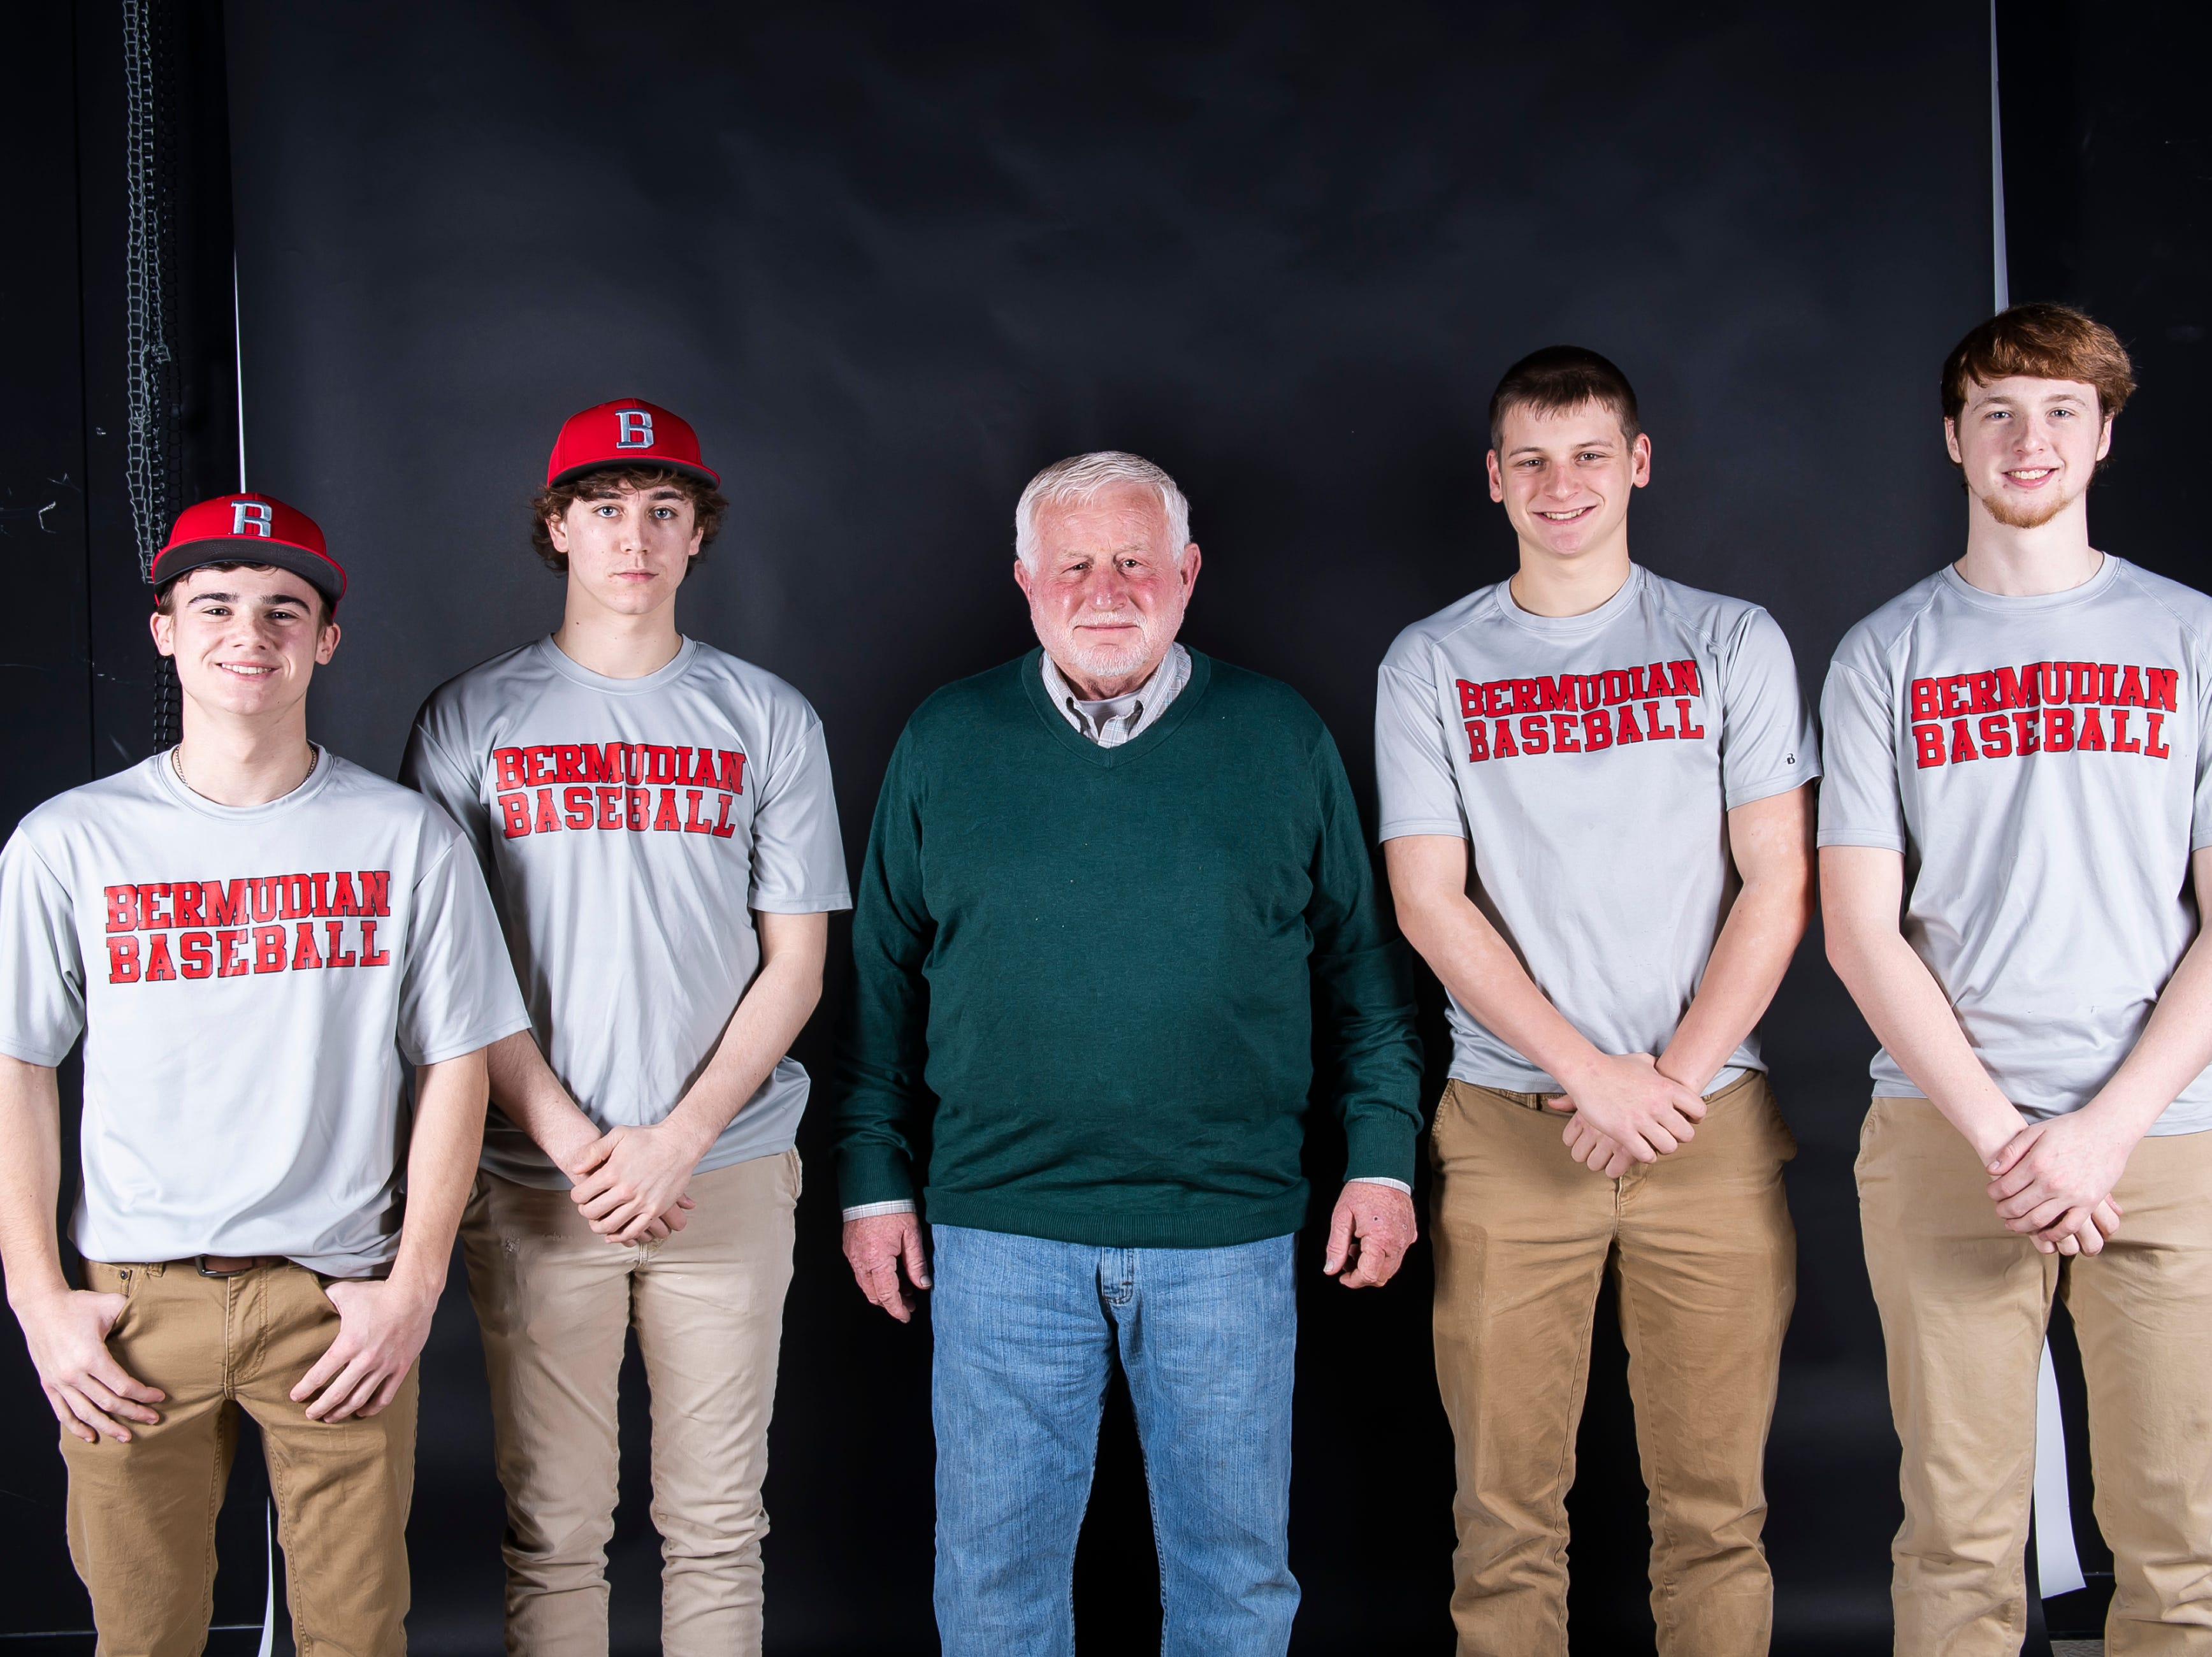 (From left) Bermudian Springs baseball players Aden Juelich, Tyler Sims, coach Bruce Reinert, Tyler Reinert and Shane Starner pose in the GameTimePA photo booth during spring sports media day in York Sunday, March 10, 2019.